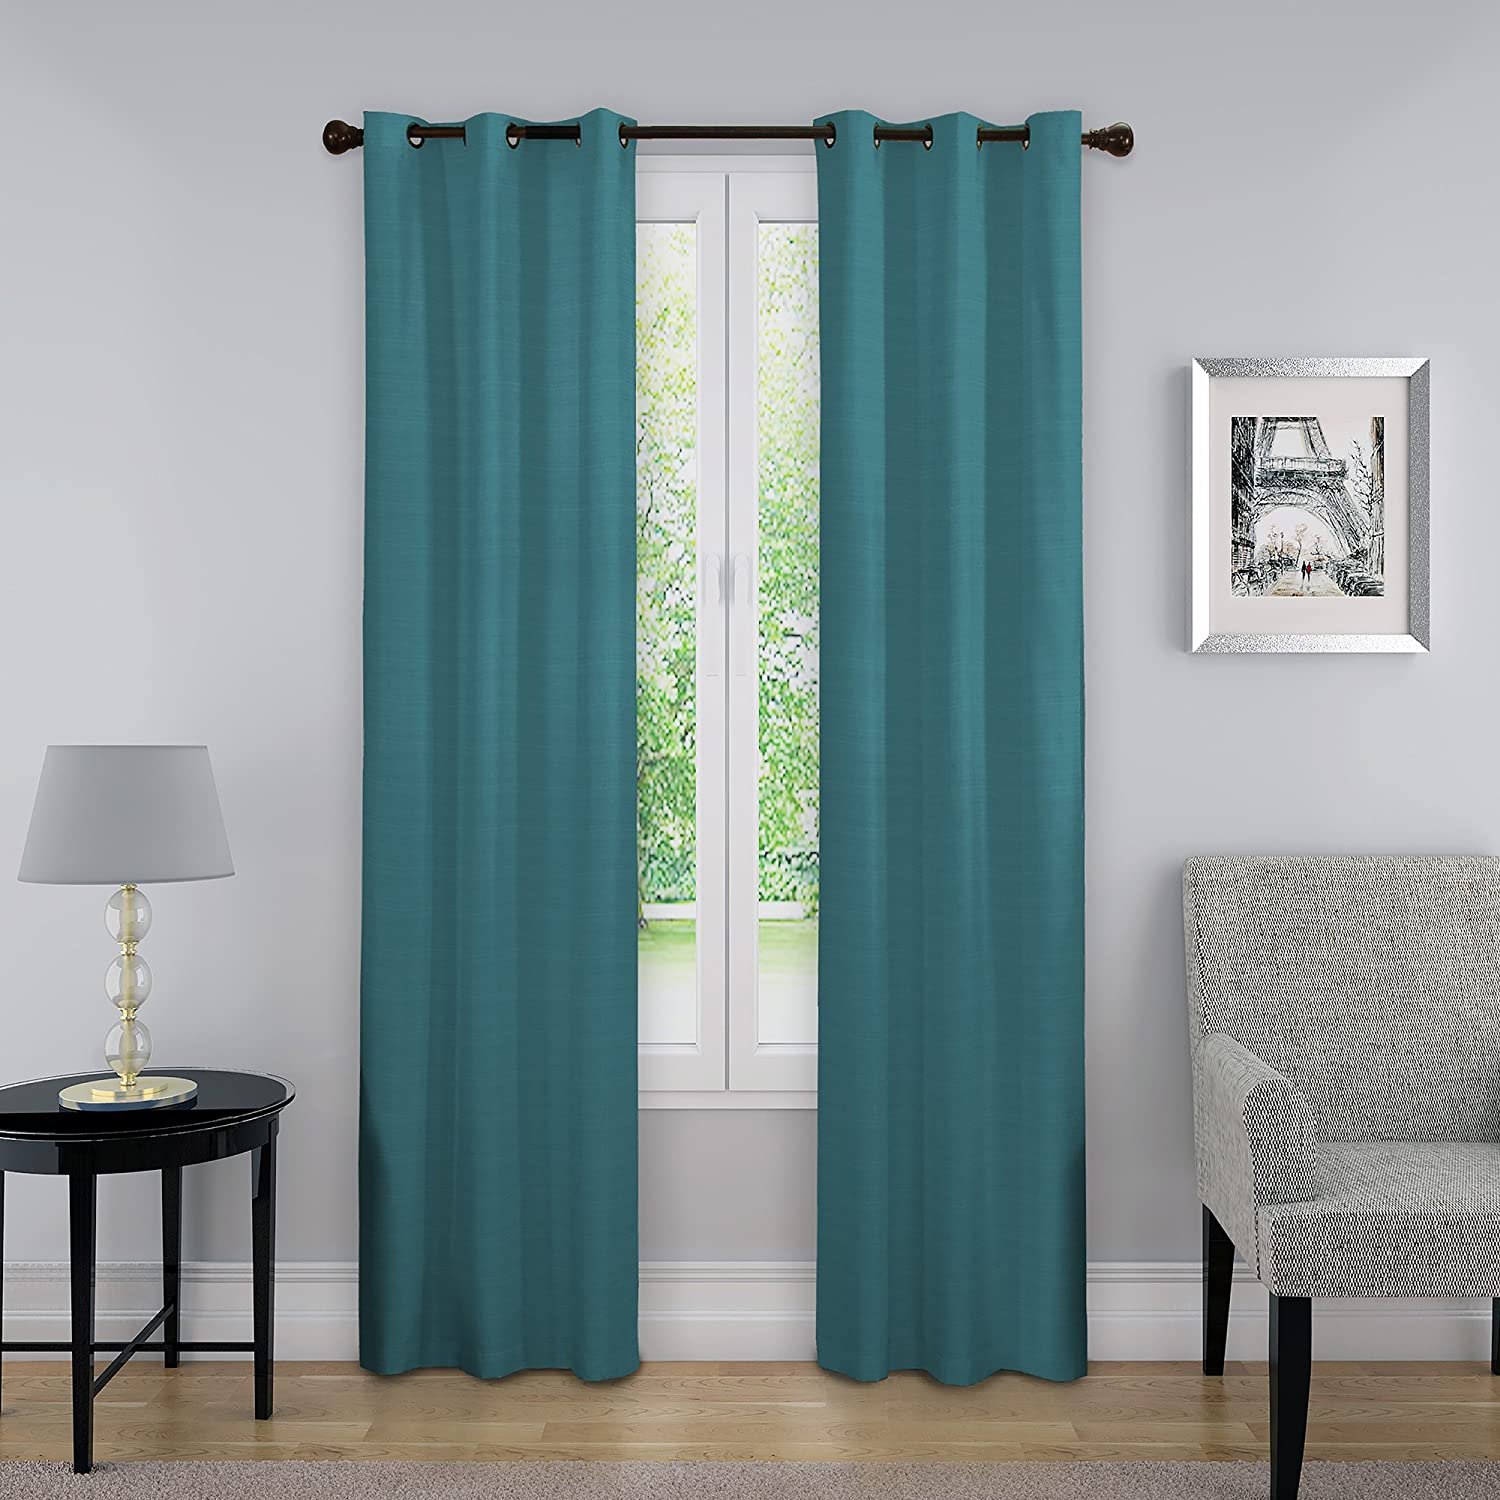 Amazon Com Eclipse Blackout Curtains For Bedroom Nikki 40 X 63 Insulated Darkening Single Panel Grommet Top Window Treatment Living Room Peacock Home Kitchen